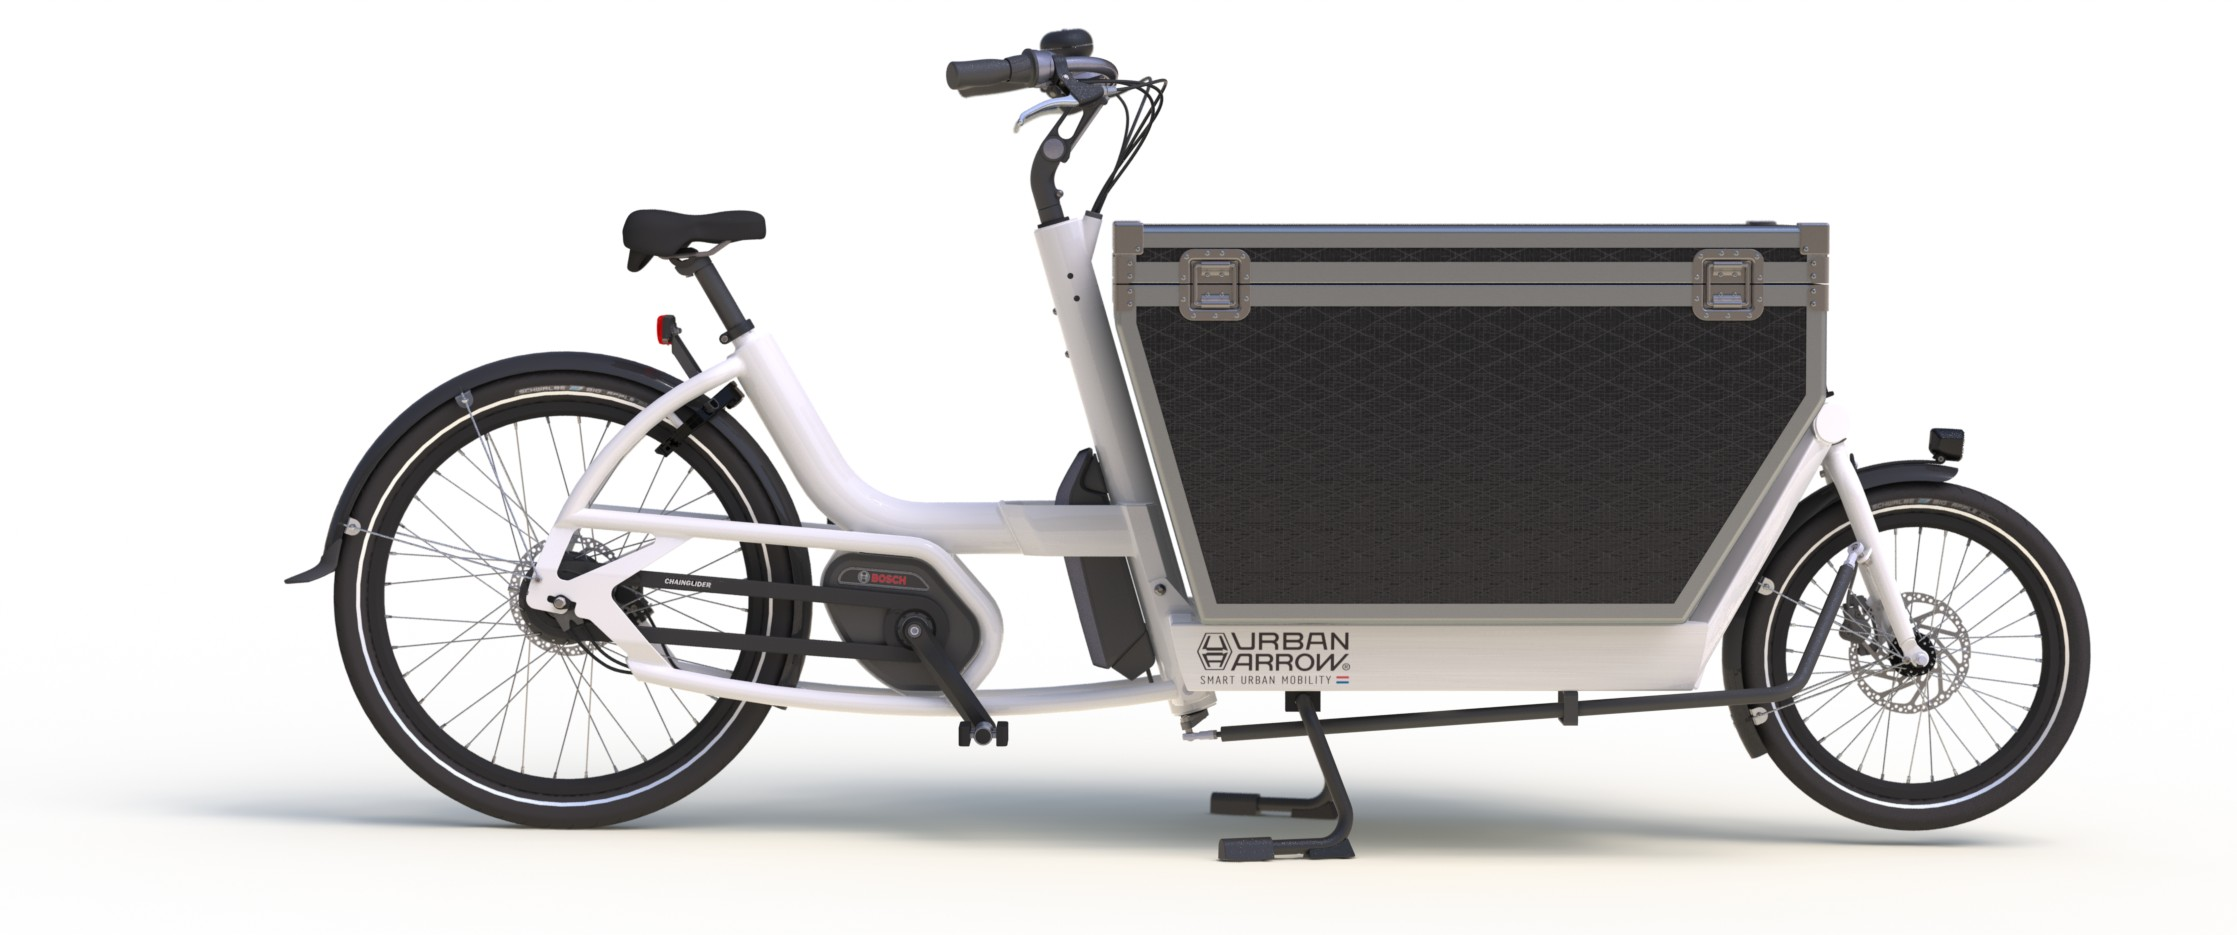 Urban Arrow Cargo.  The  Cargo is the ideal alternative for a small van. Only better; it replaces the last mile with the last green mile; the  Cargo doesn't emit CO2 or any other polluting particles. What's more it is fast, efficient, and doesn't make a sound. Thus supporting a cleaner environment. And a cleaner image, of course!